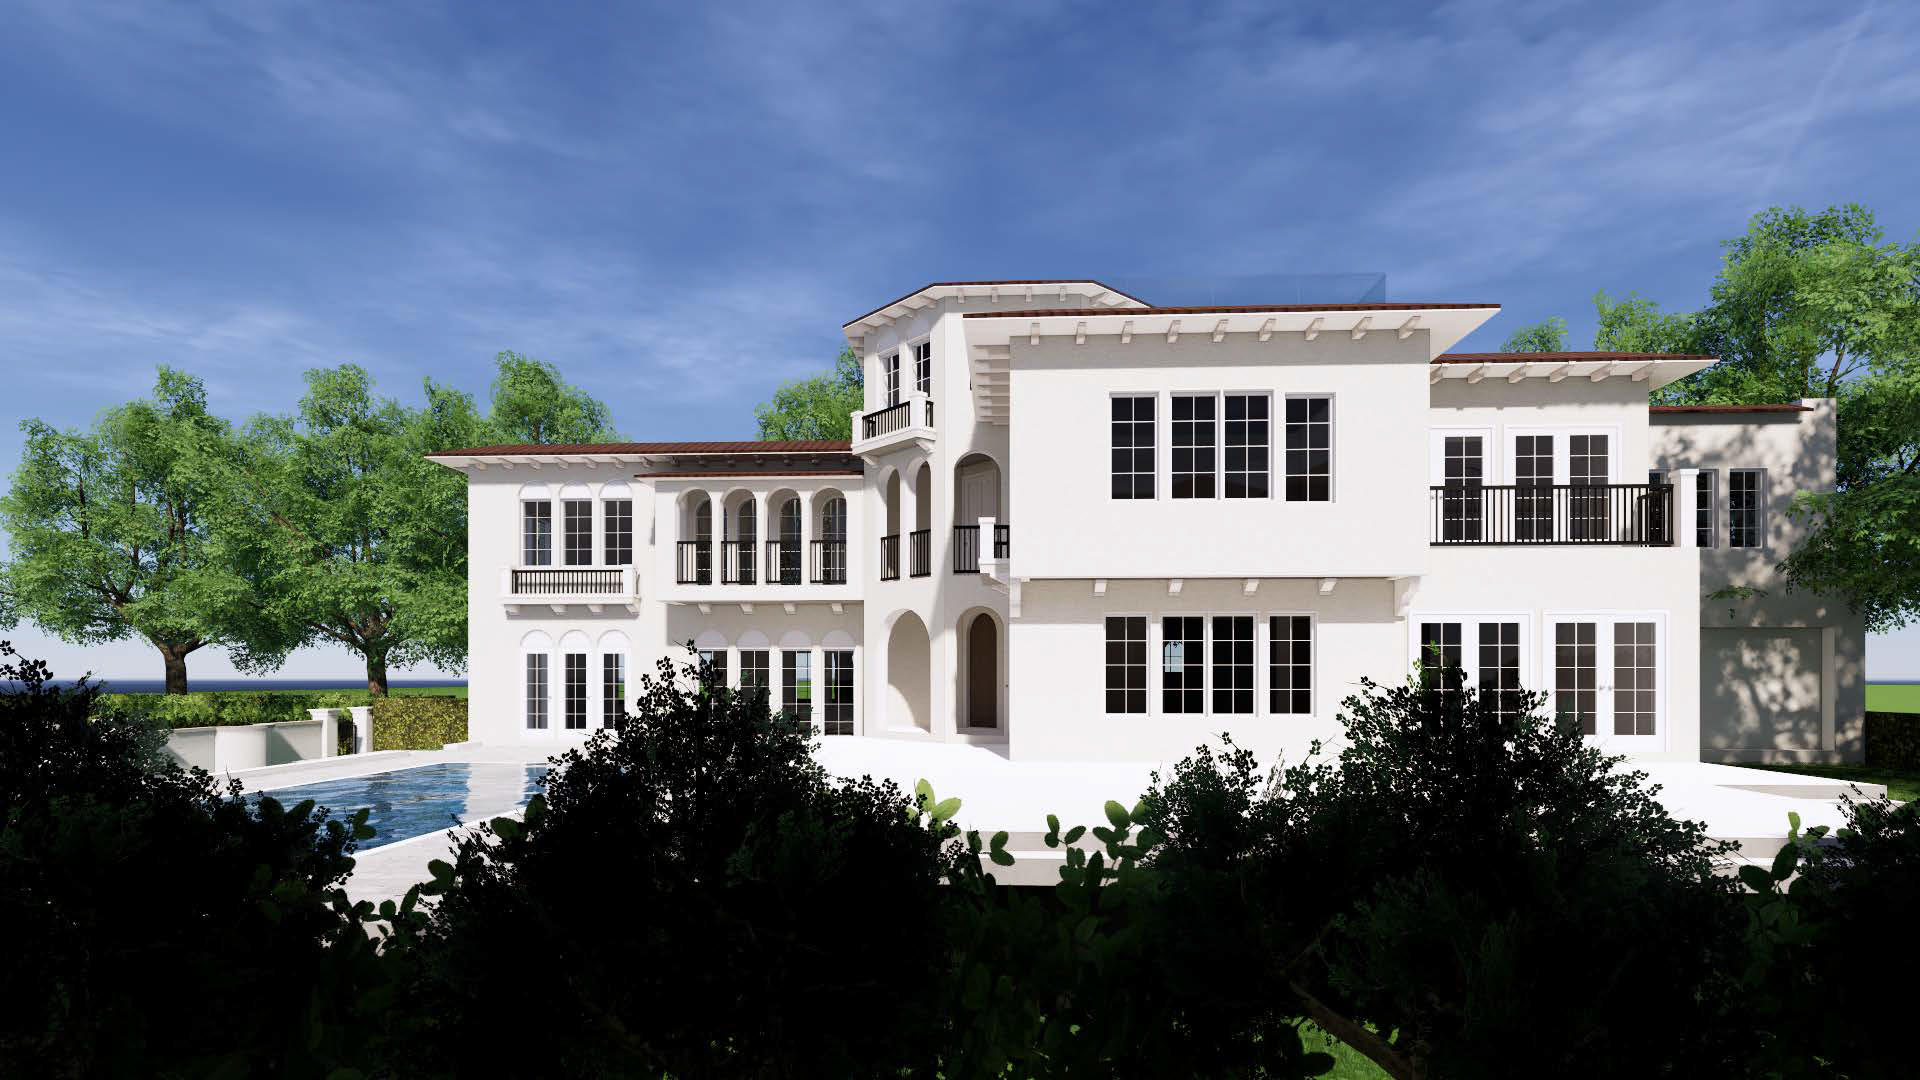 Generals-House-design-package[1] 4